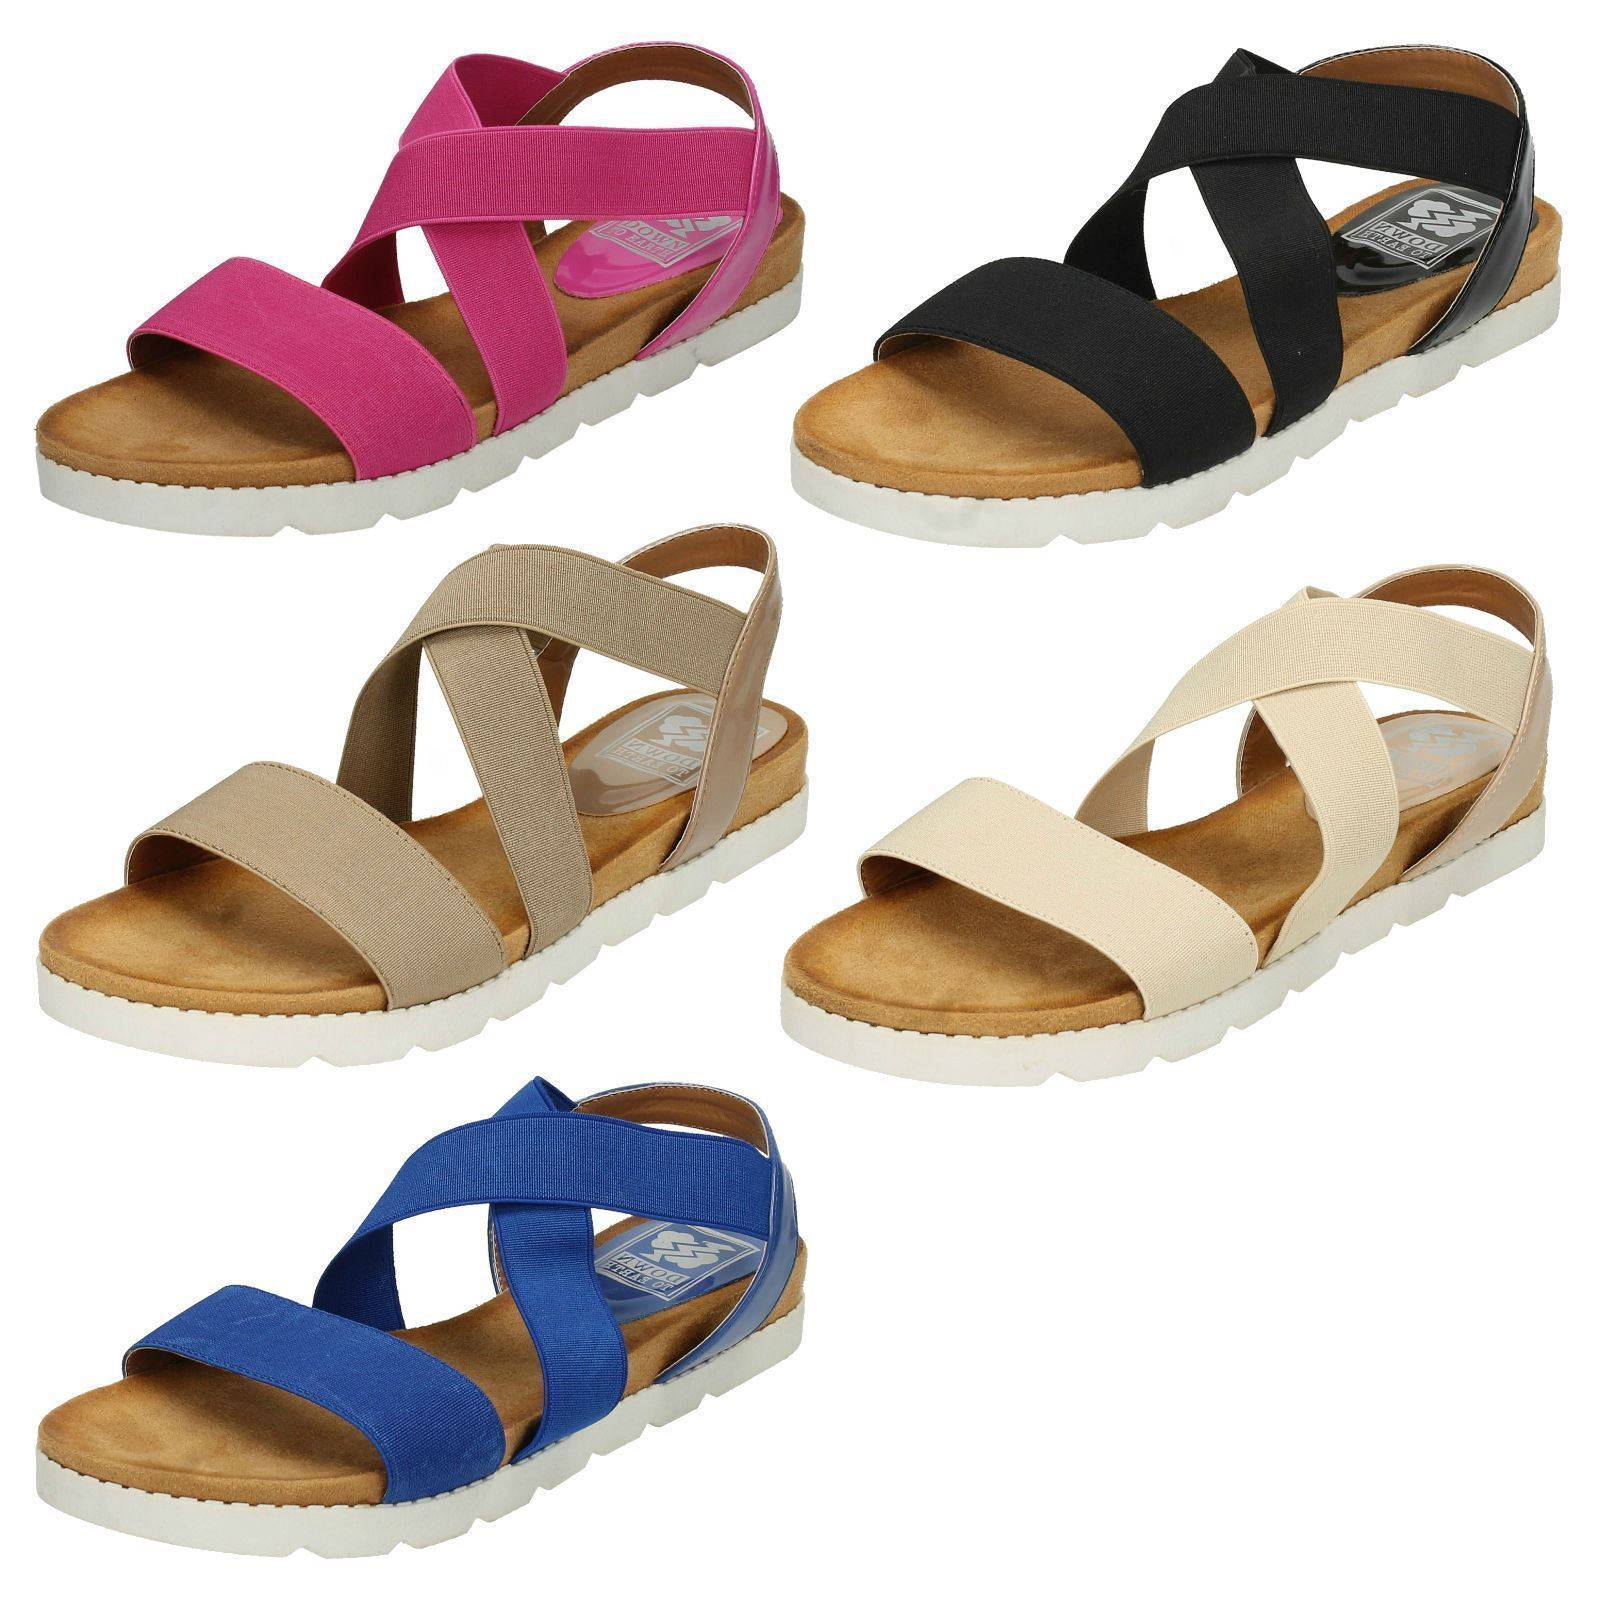 DOWN X TO EARTH LADIES OPEN TOE SYNTHETIC ELASTIC X DOWN STRAP MULE SANDALS F10323 1660c6